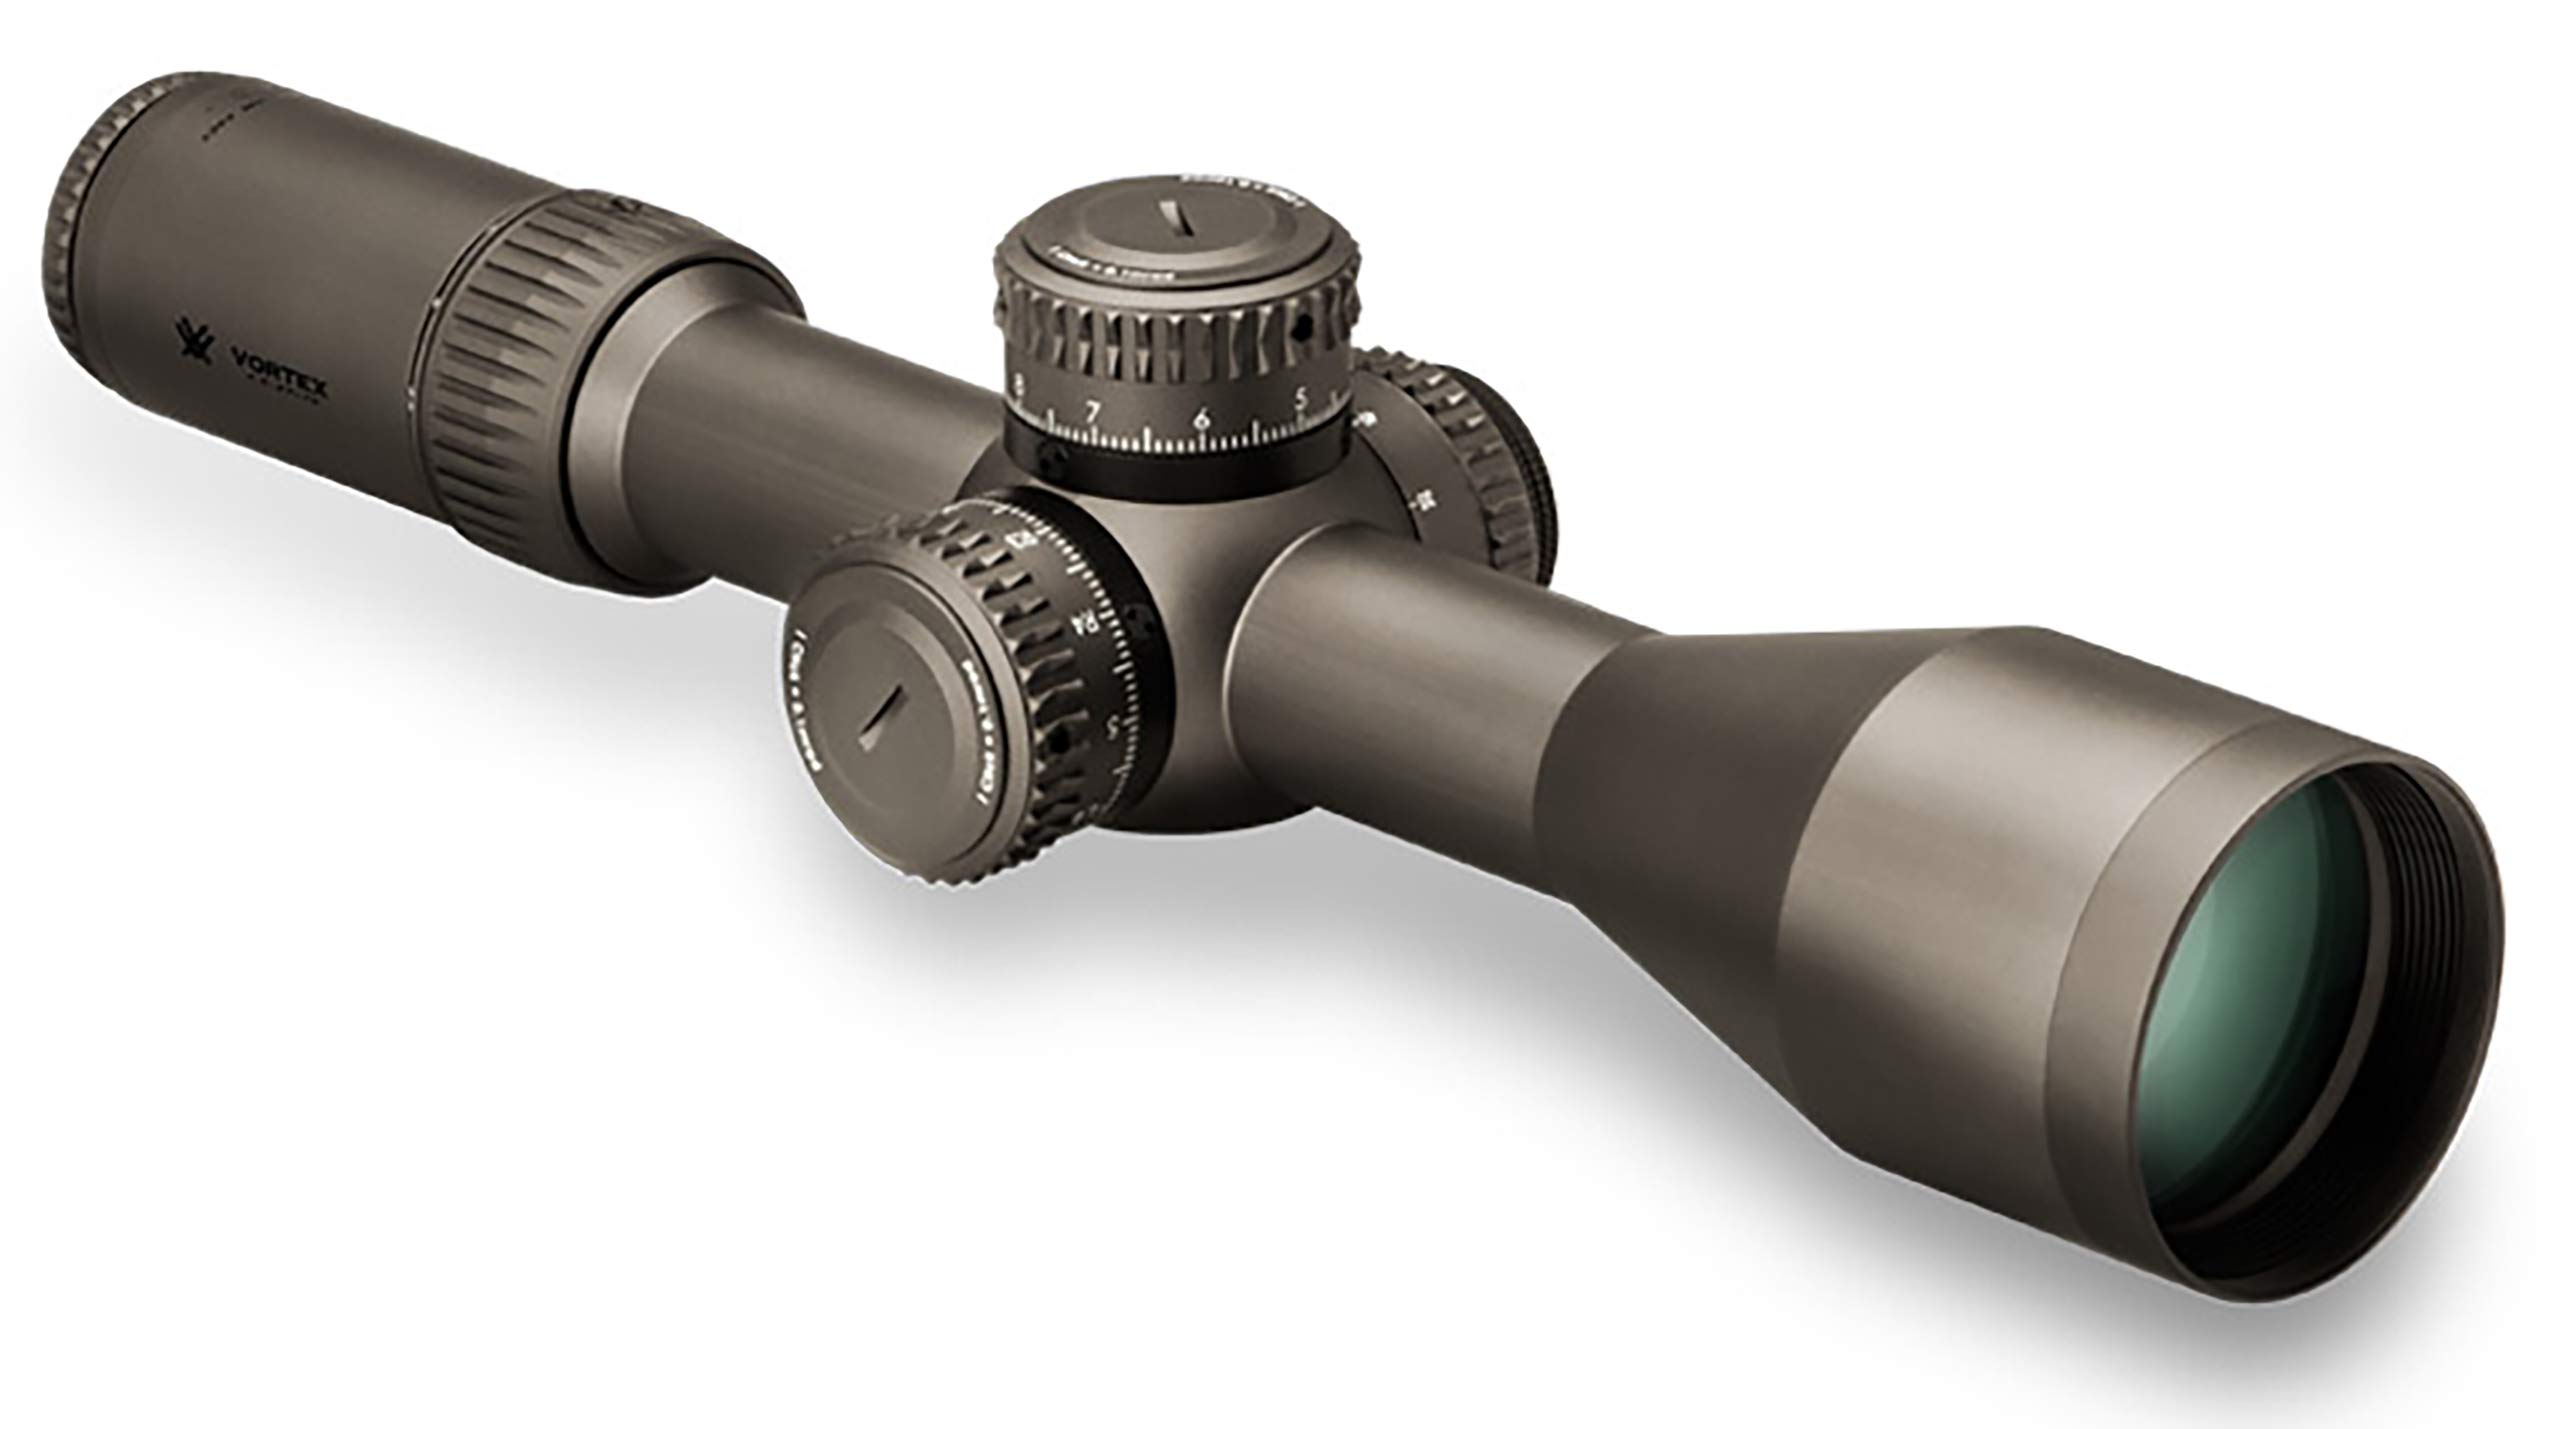 Vortex Optics Razor HD Gen II 4.5-27x56 FFP Riflescope Horus Tremor 3 MRAD by Vortex Optics